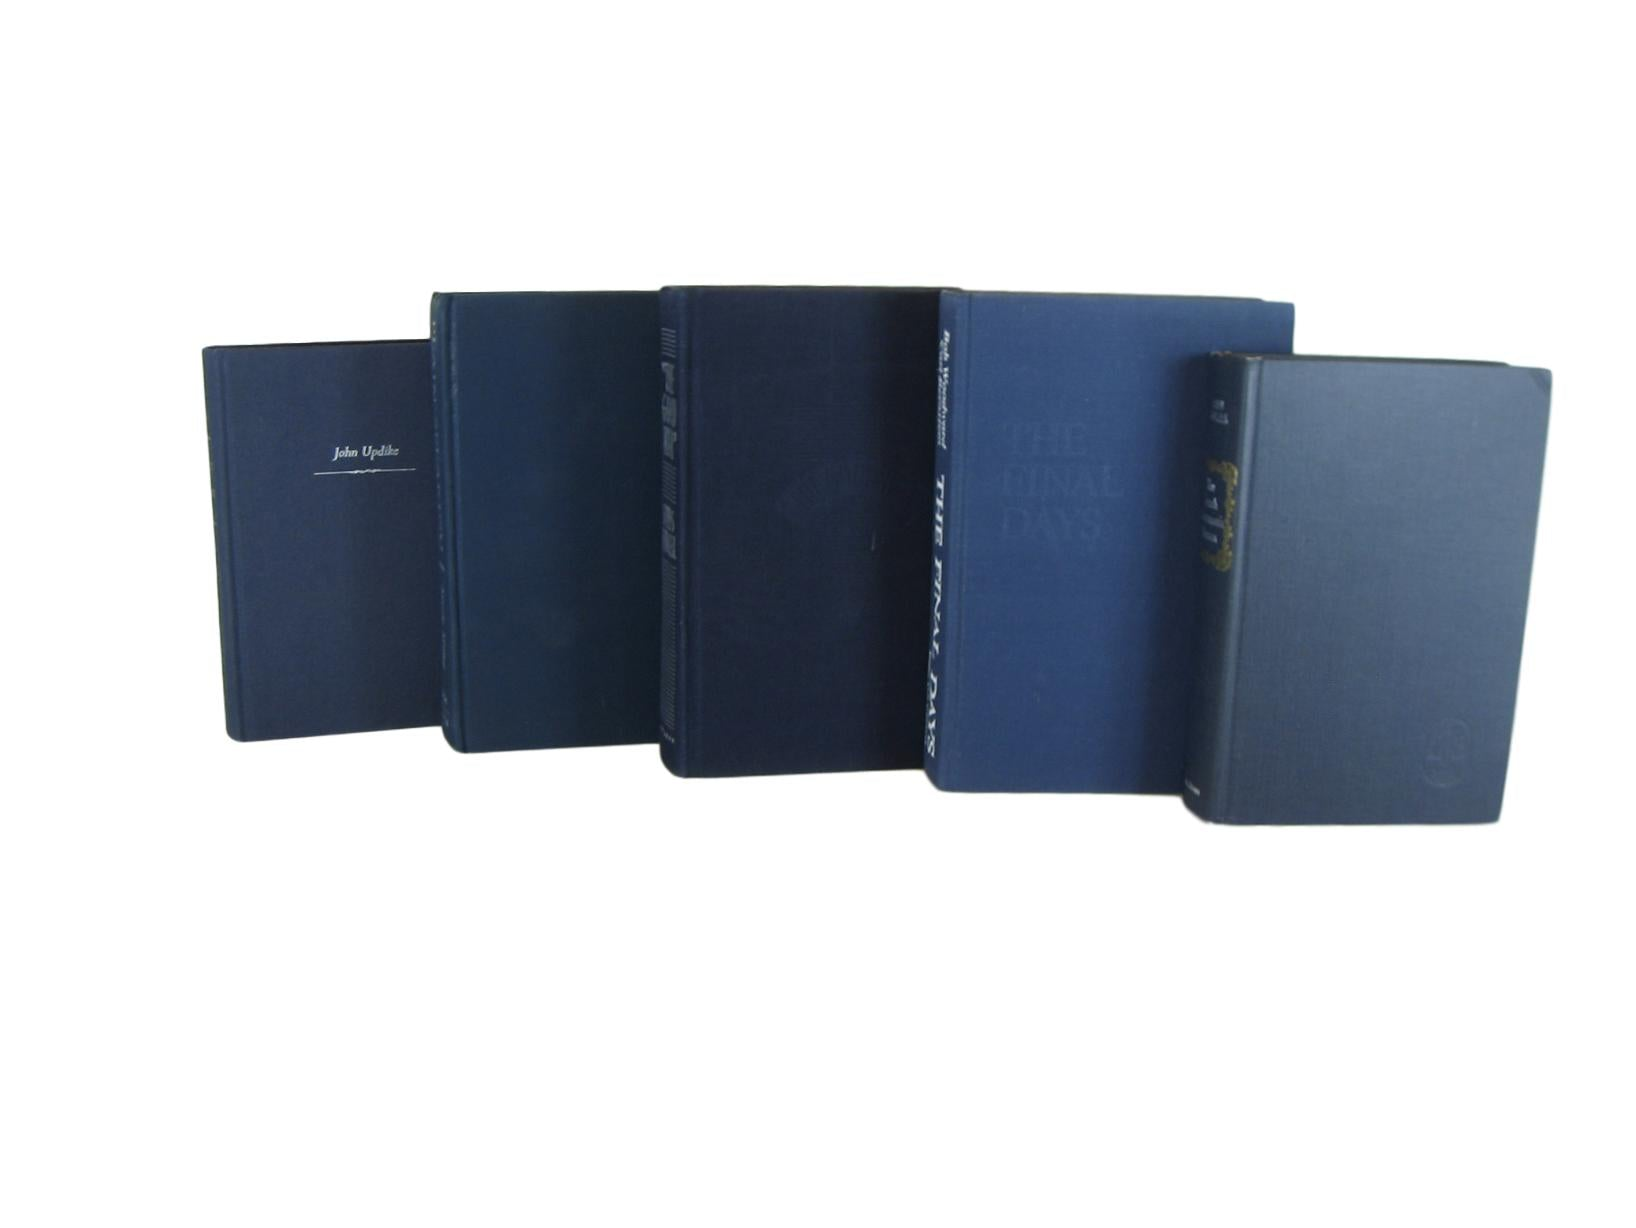 Blue Vintage Decorative Book Set, S/5 - Decades of Vintage